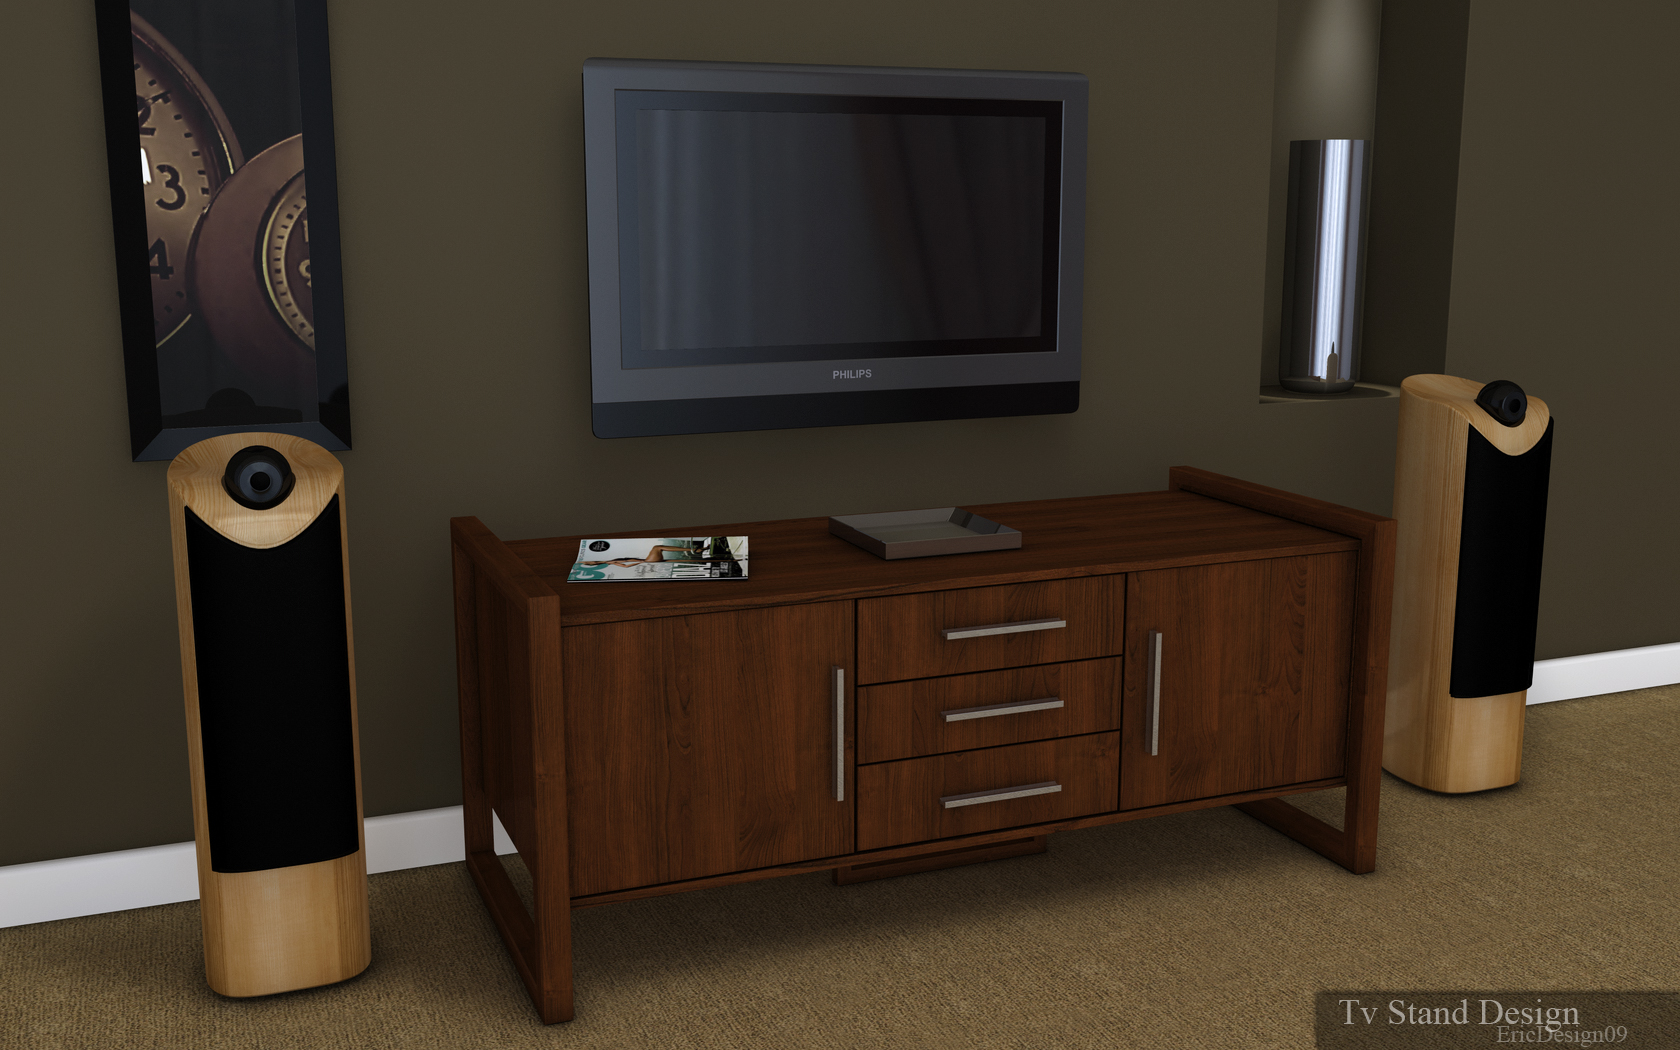 Tv stand design by 3DEricDesign on deviantART